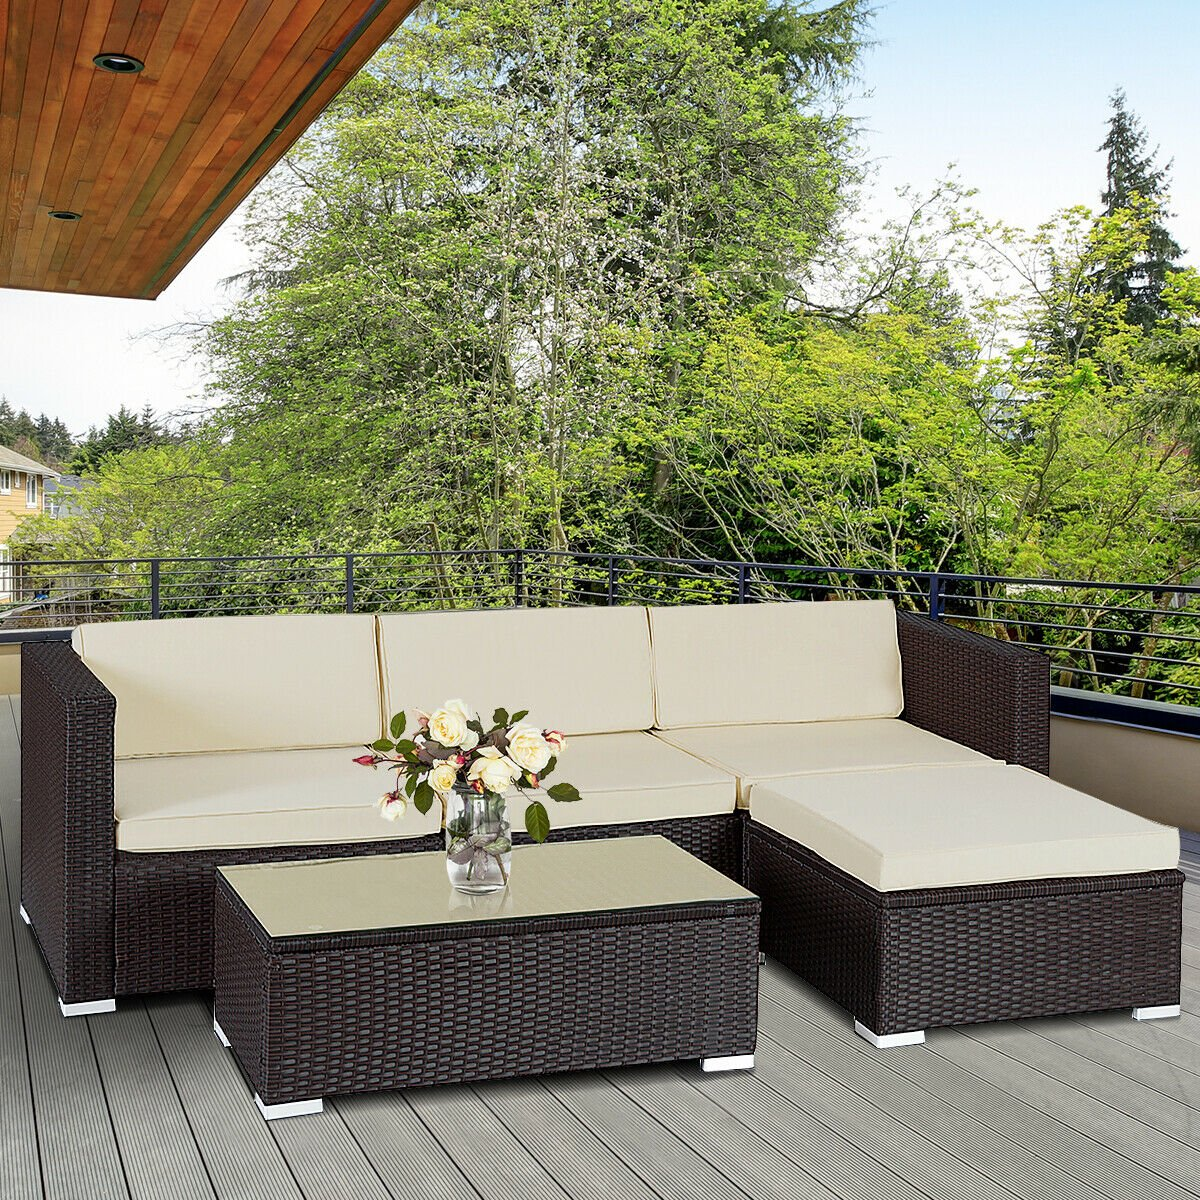 5pcs Patio Furniture Set Rattan Wicker